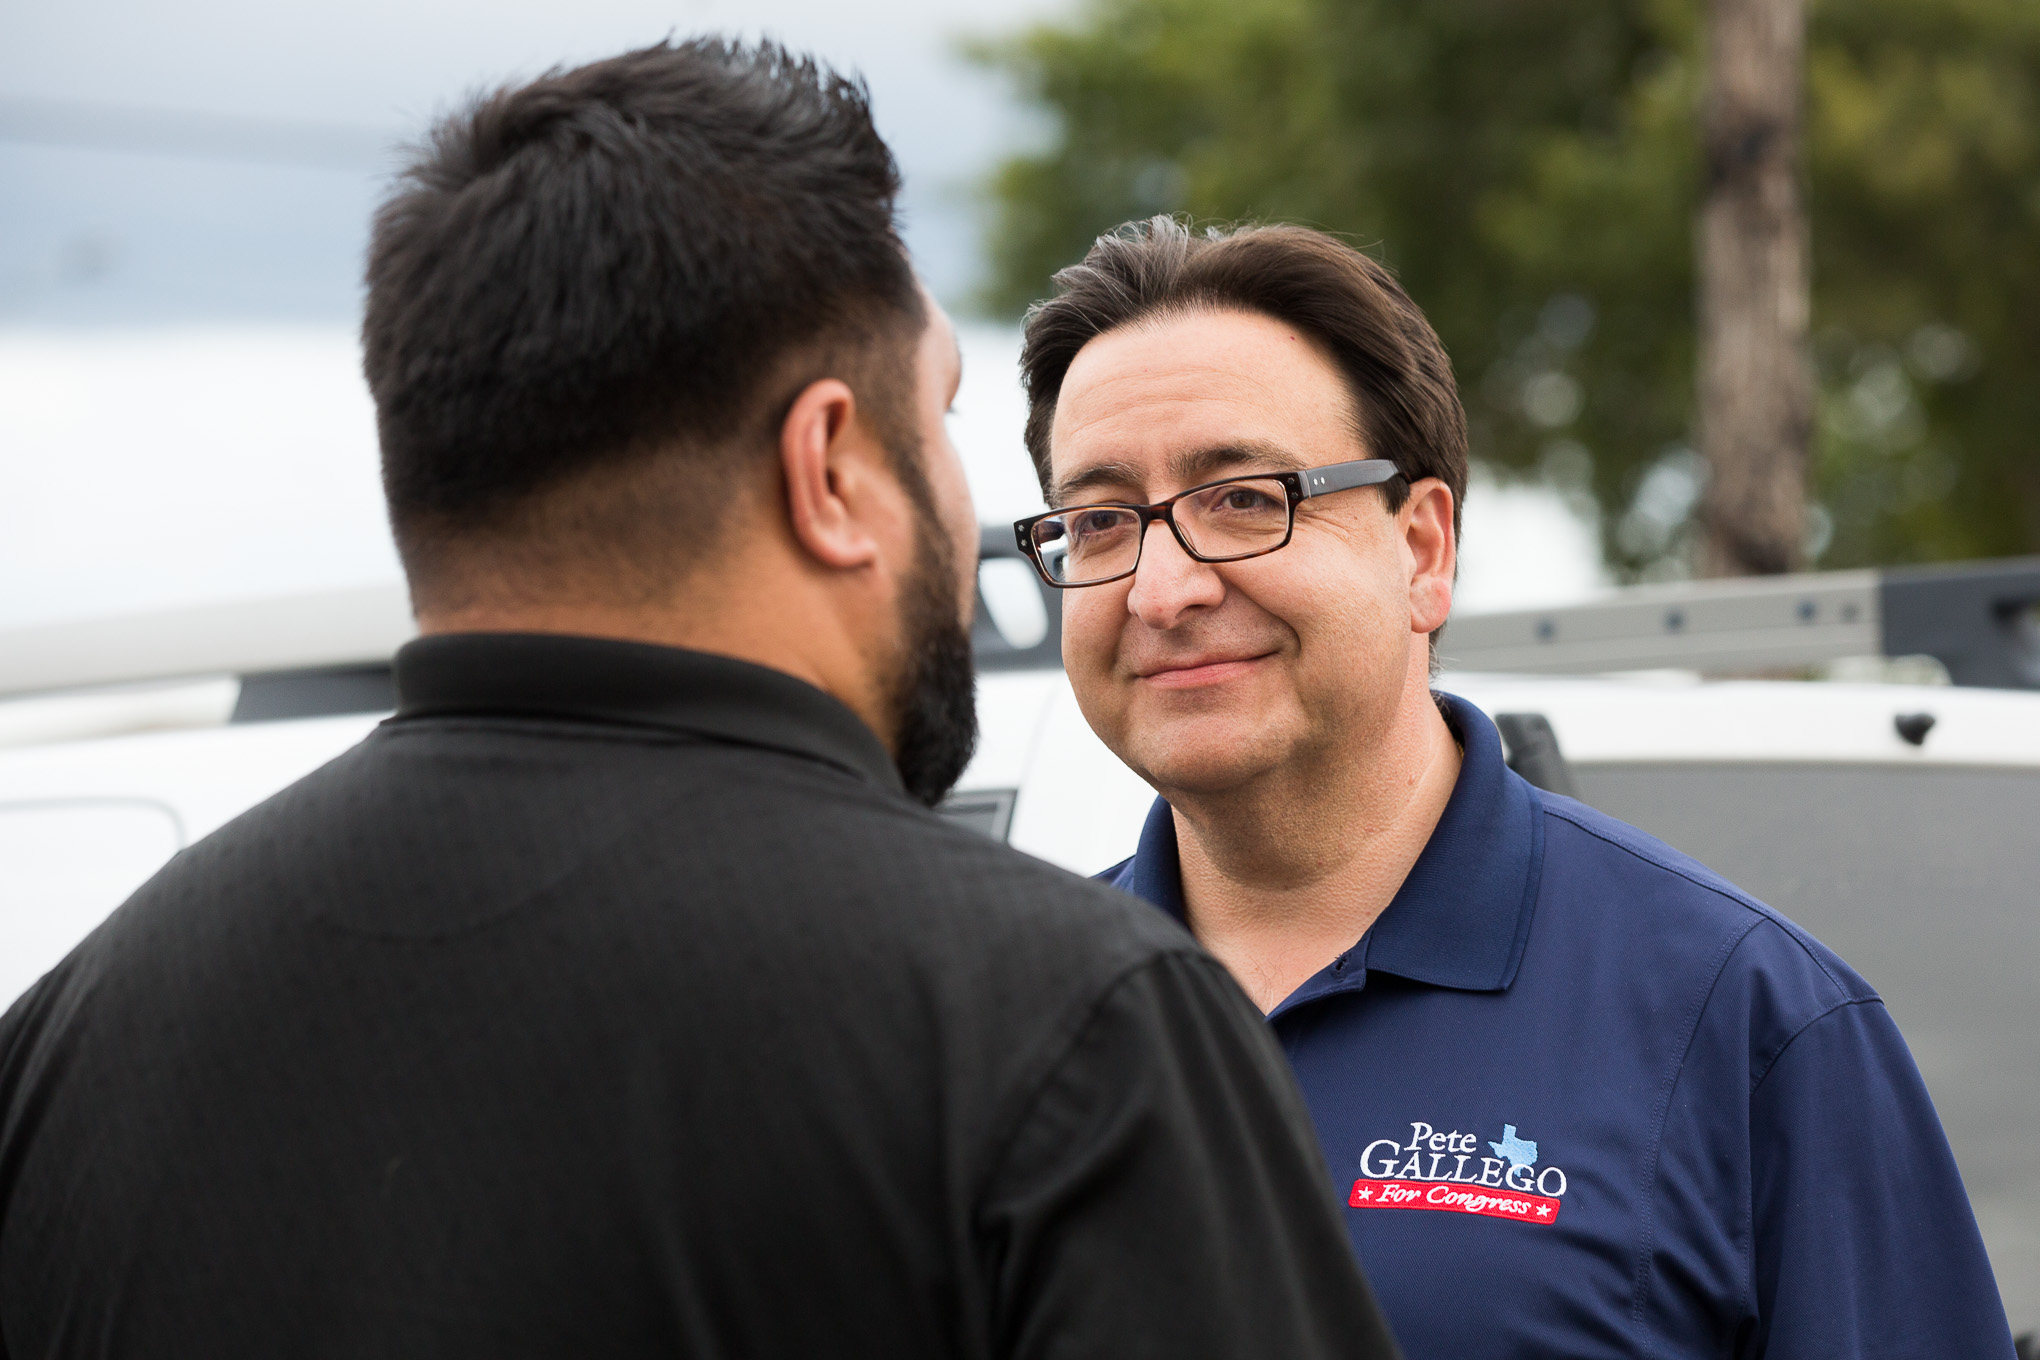 United States Representative, TX 23rd District, Pete Gallego speaks with a vote at Pease Middle School.